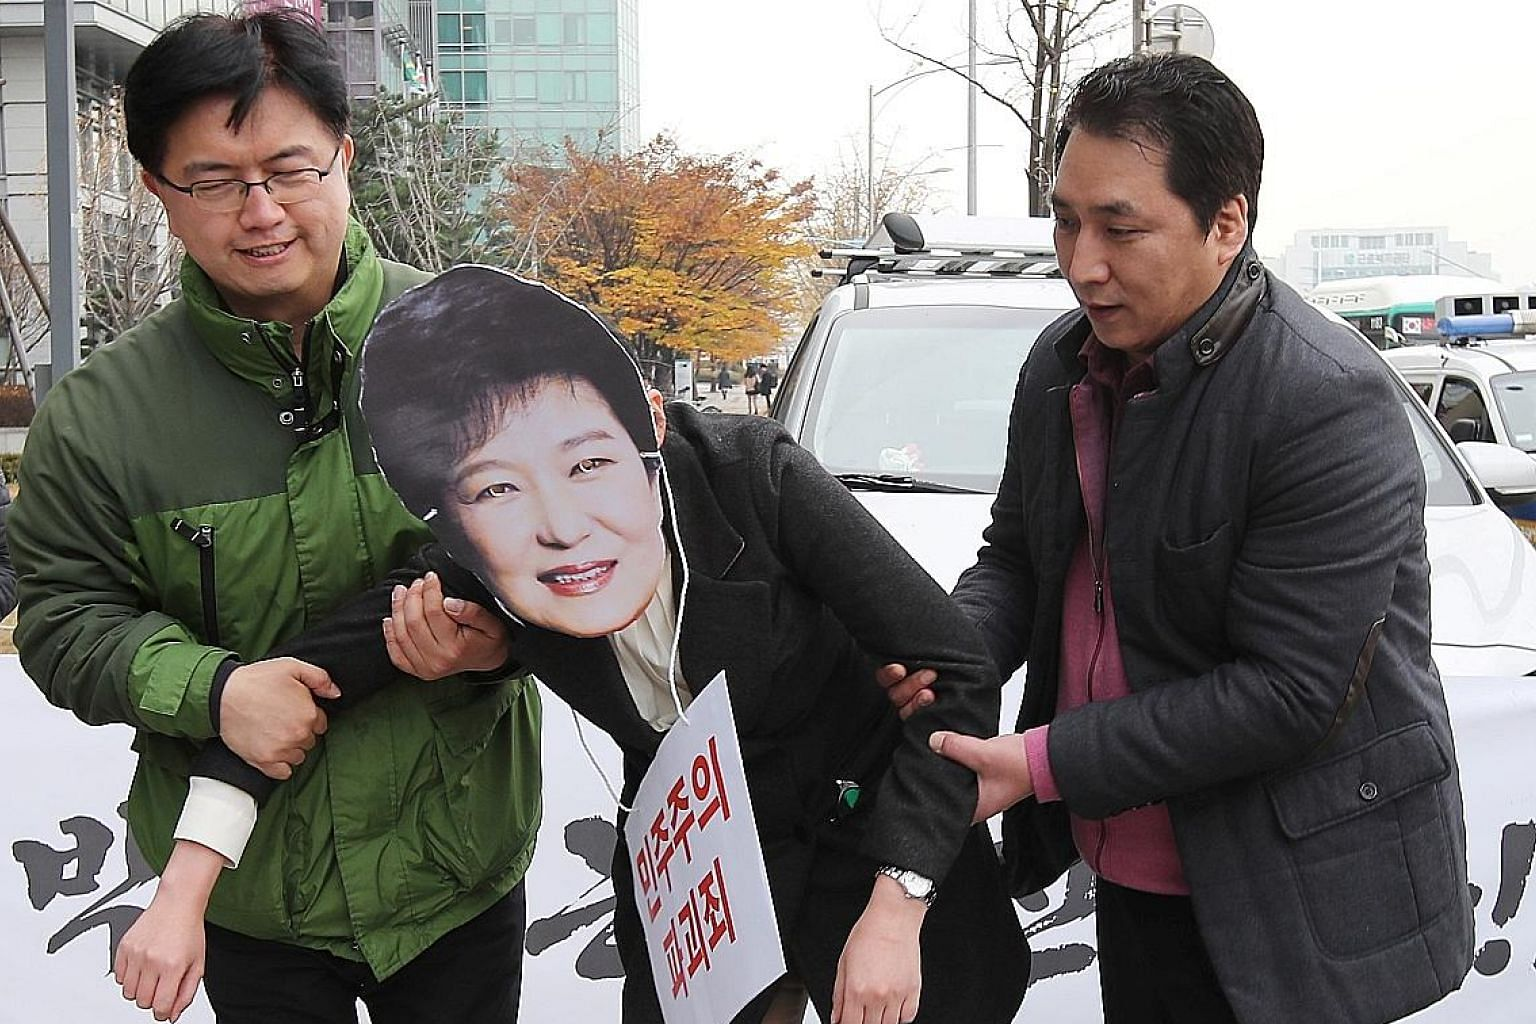 Demonstrators, one of whom is wearing a mask of President Park, taking part in a rally calling for the leader to step down. The snowballing saga is giving both the President and nation a bad name.